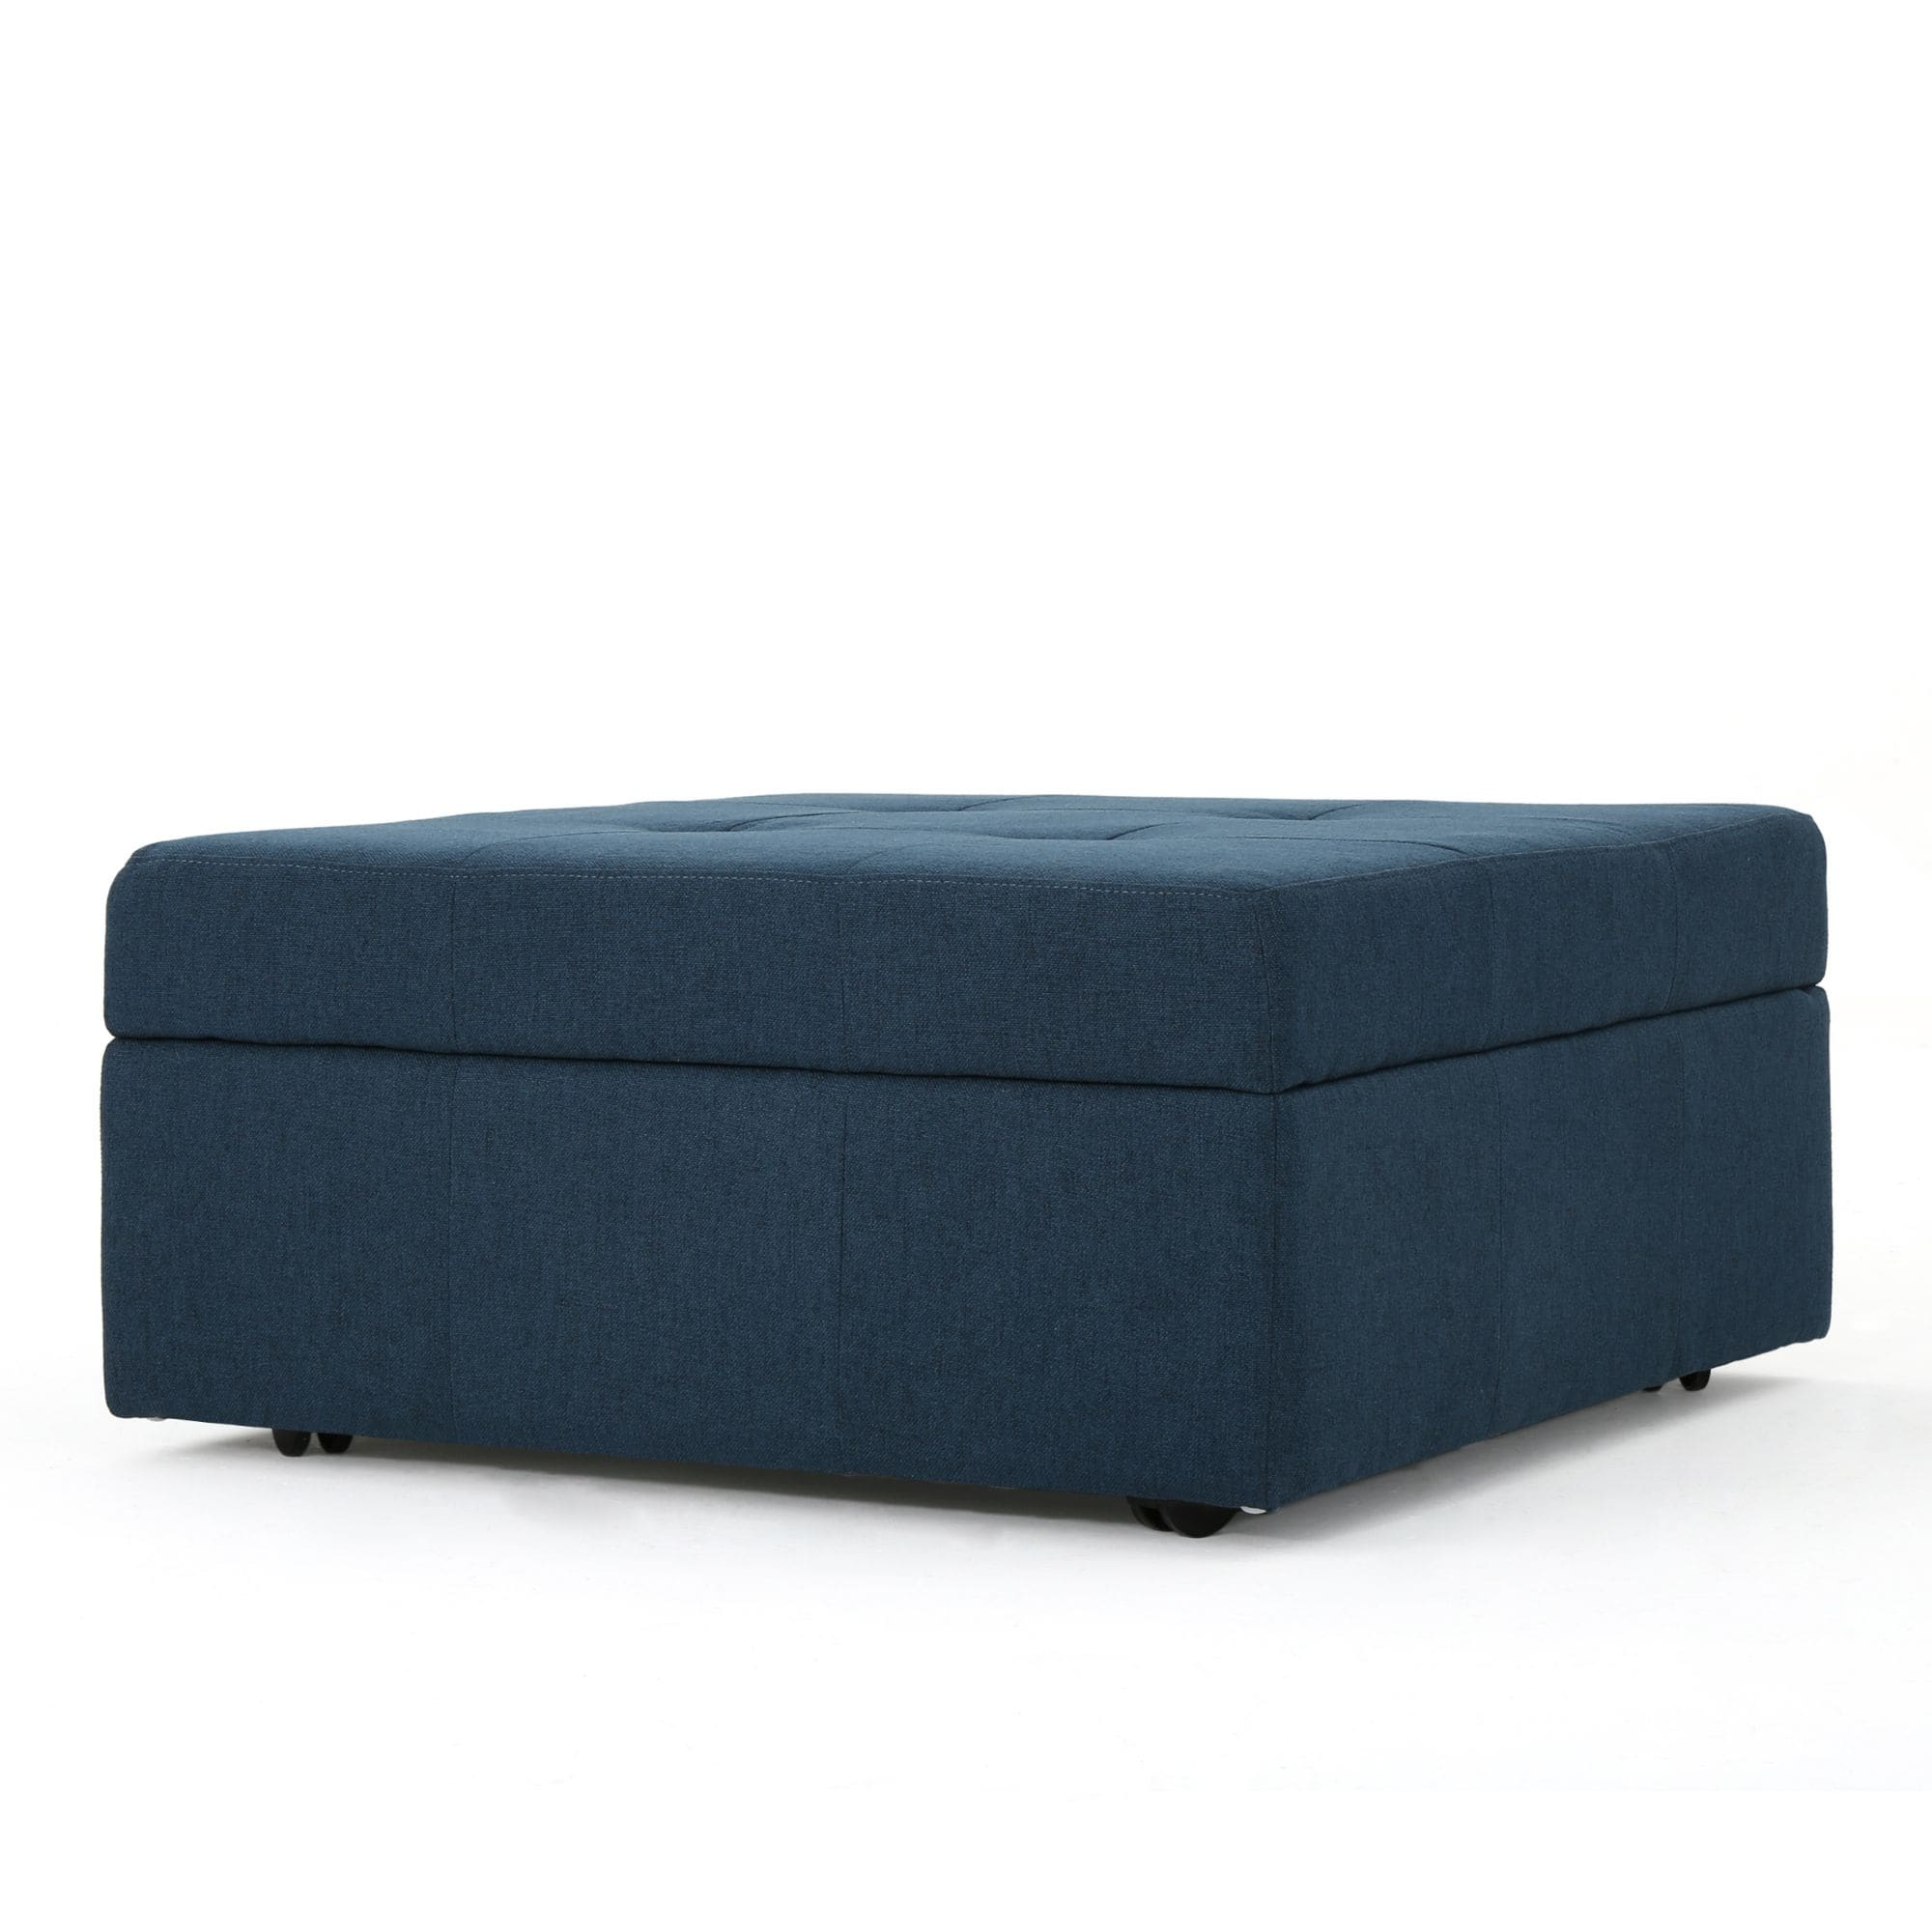 31 black and navy blue upholstered square storage ottoman